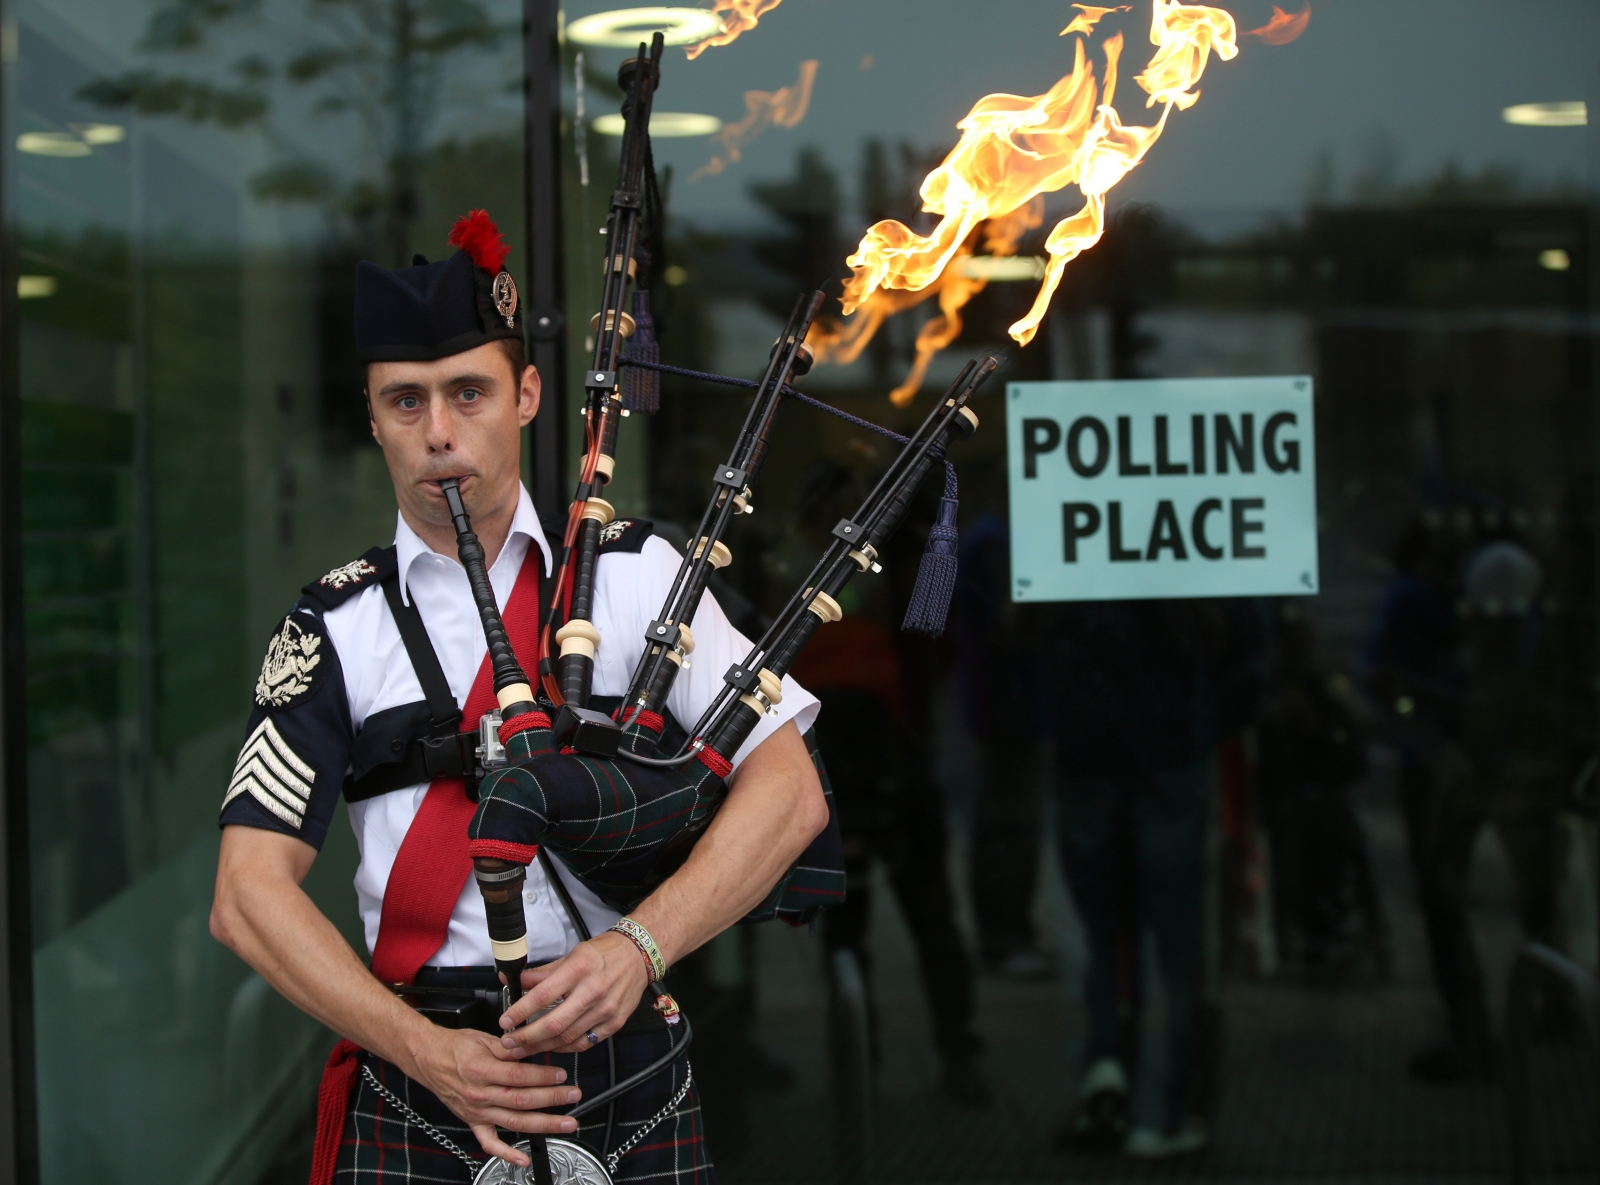 Scottish Independence Holyrood Report: A Tale of Two Realities